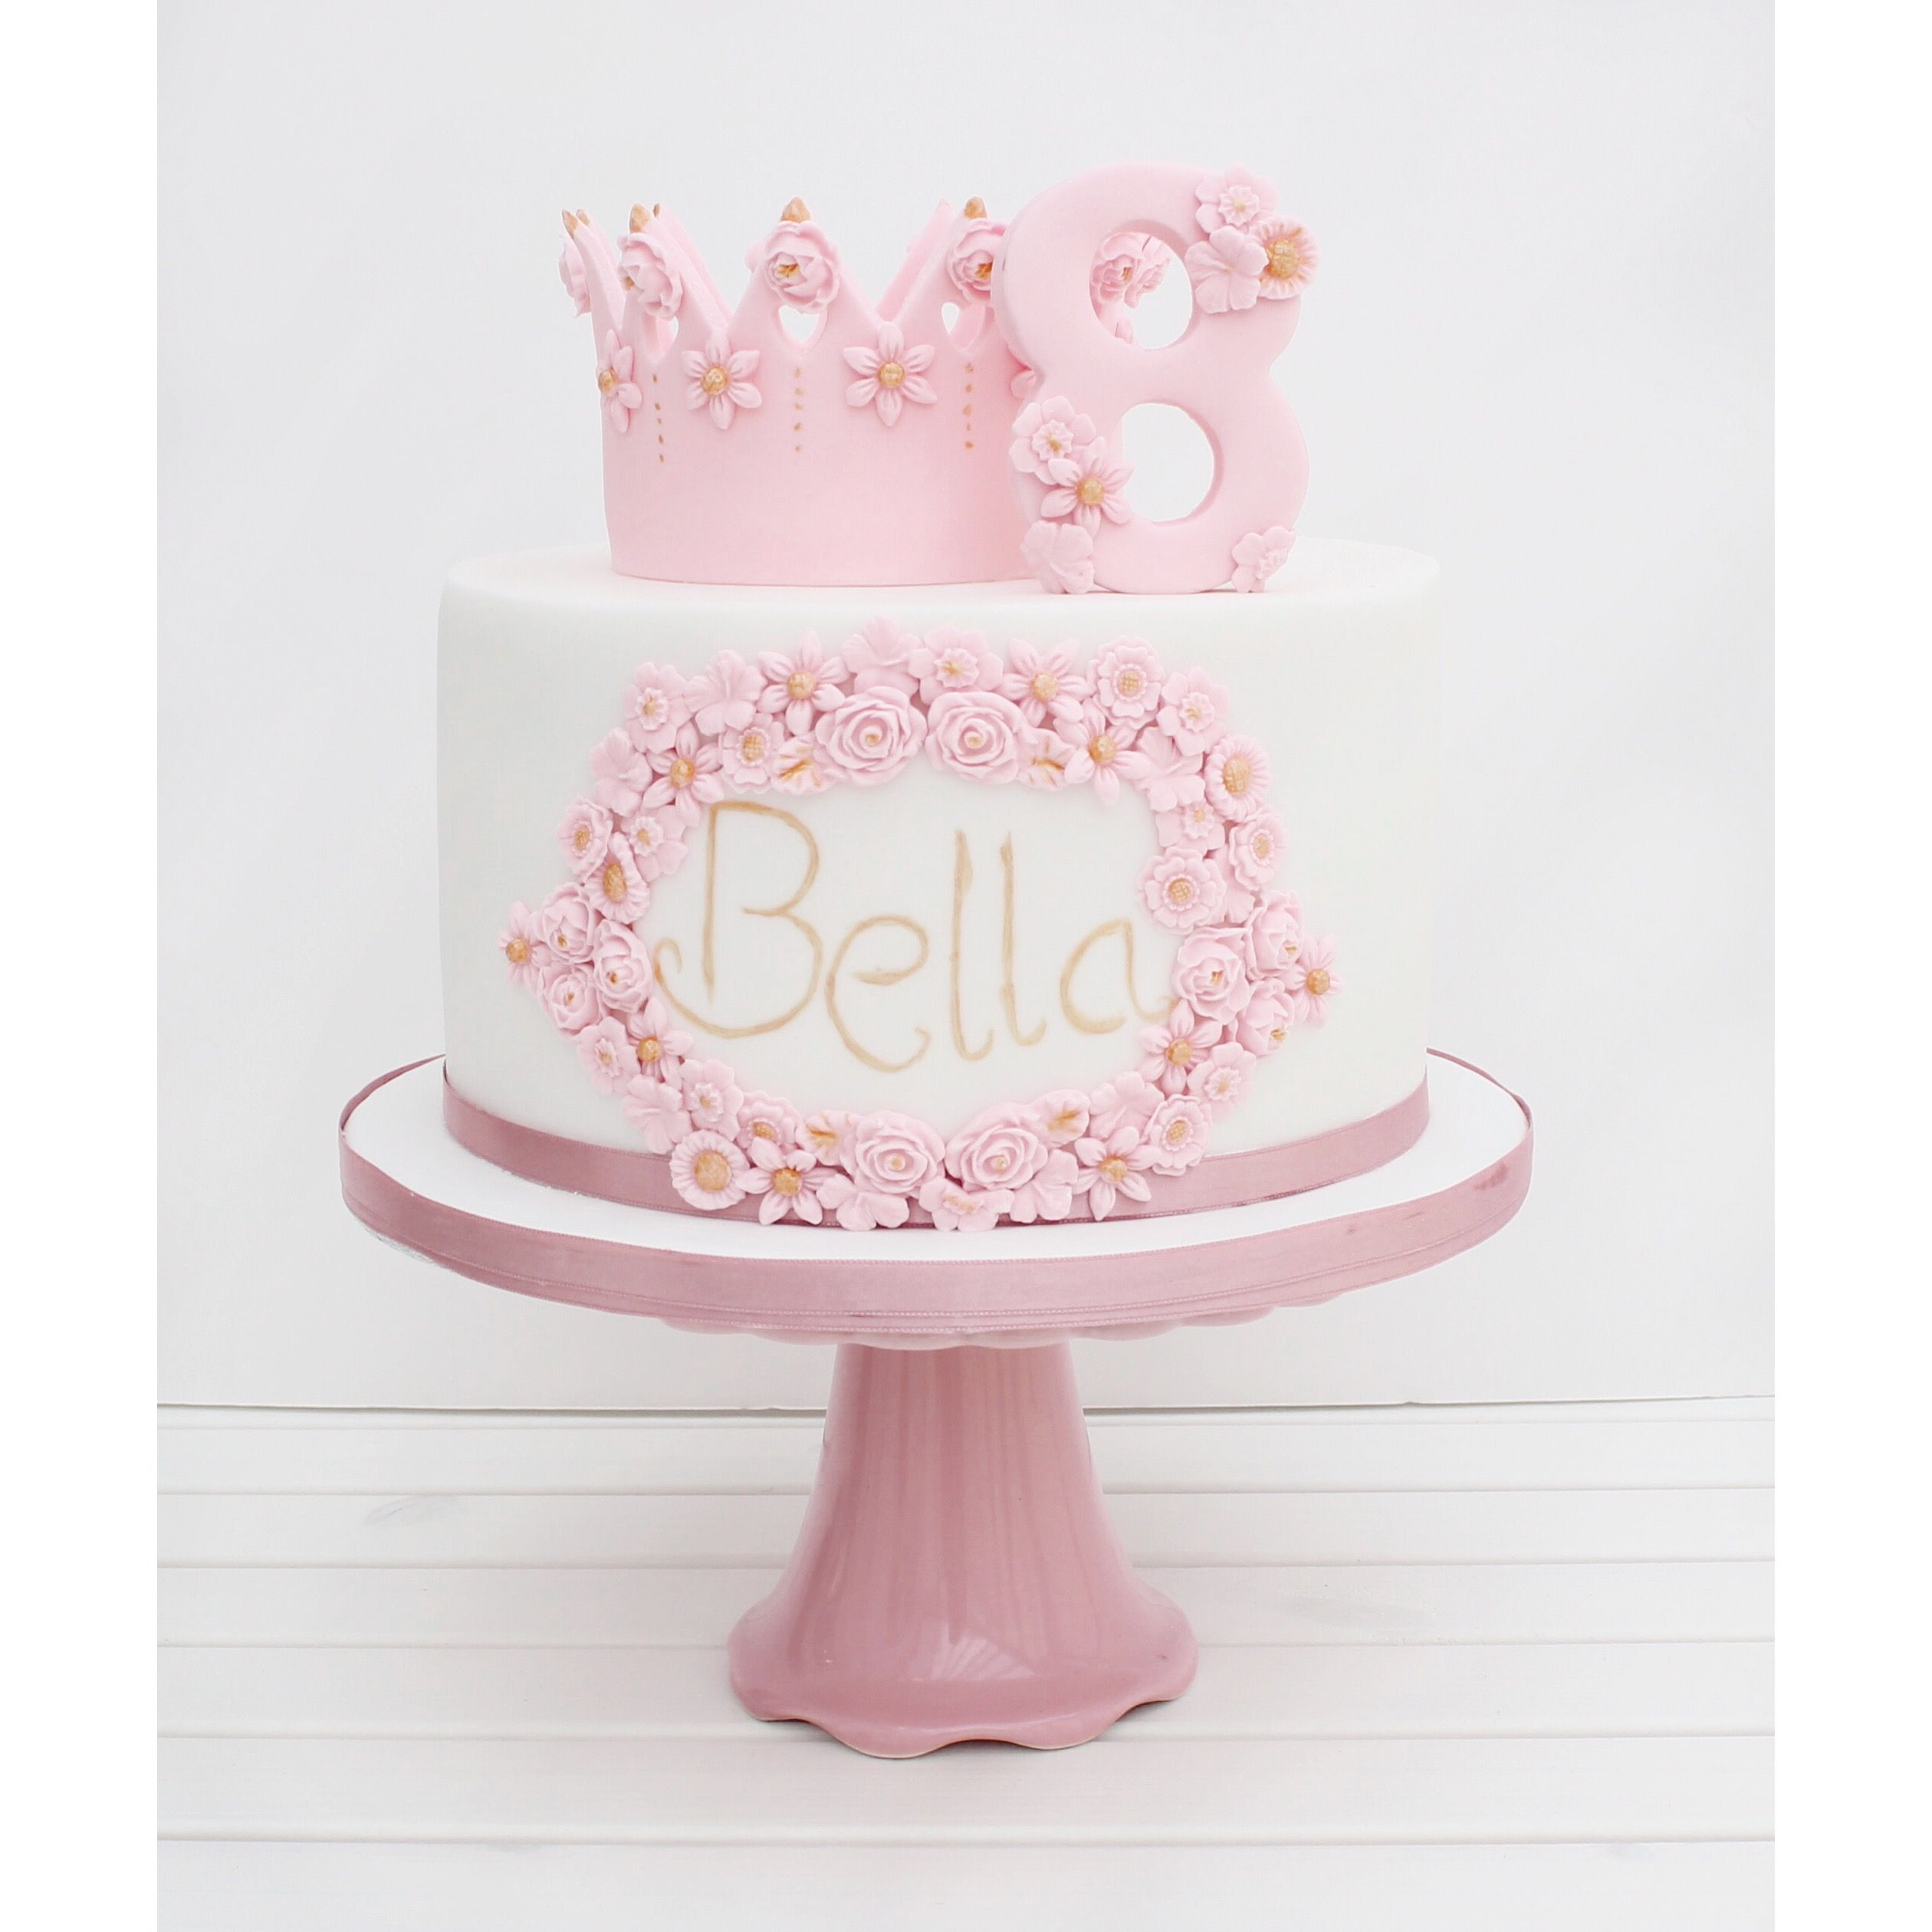 Swell Cherry Crumbs Princess Flower And Crown Birthday Cake Pink Cake Funny Birthday Cards Online Sheoxdamsfinfo